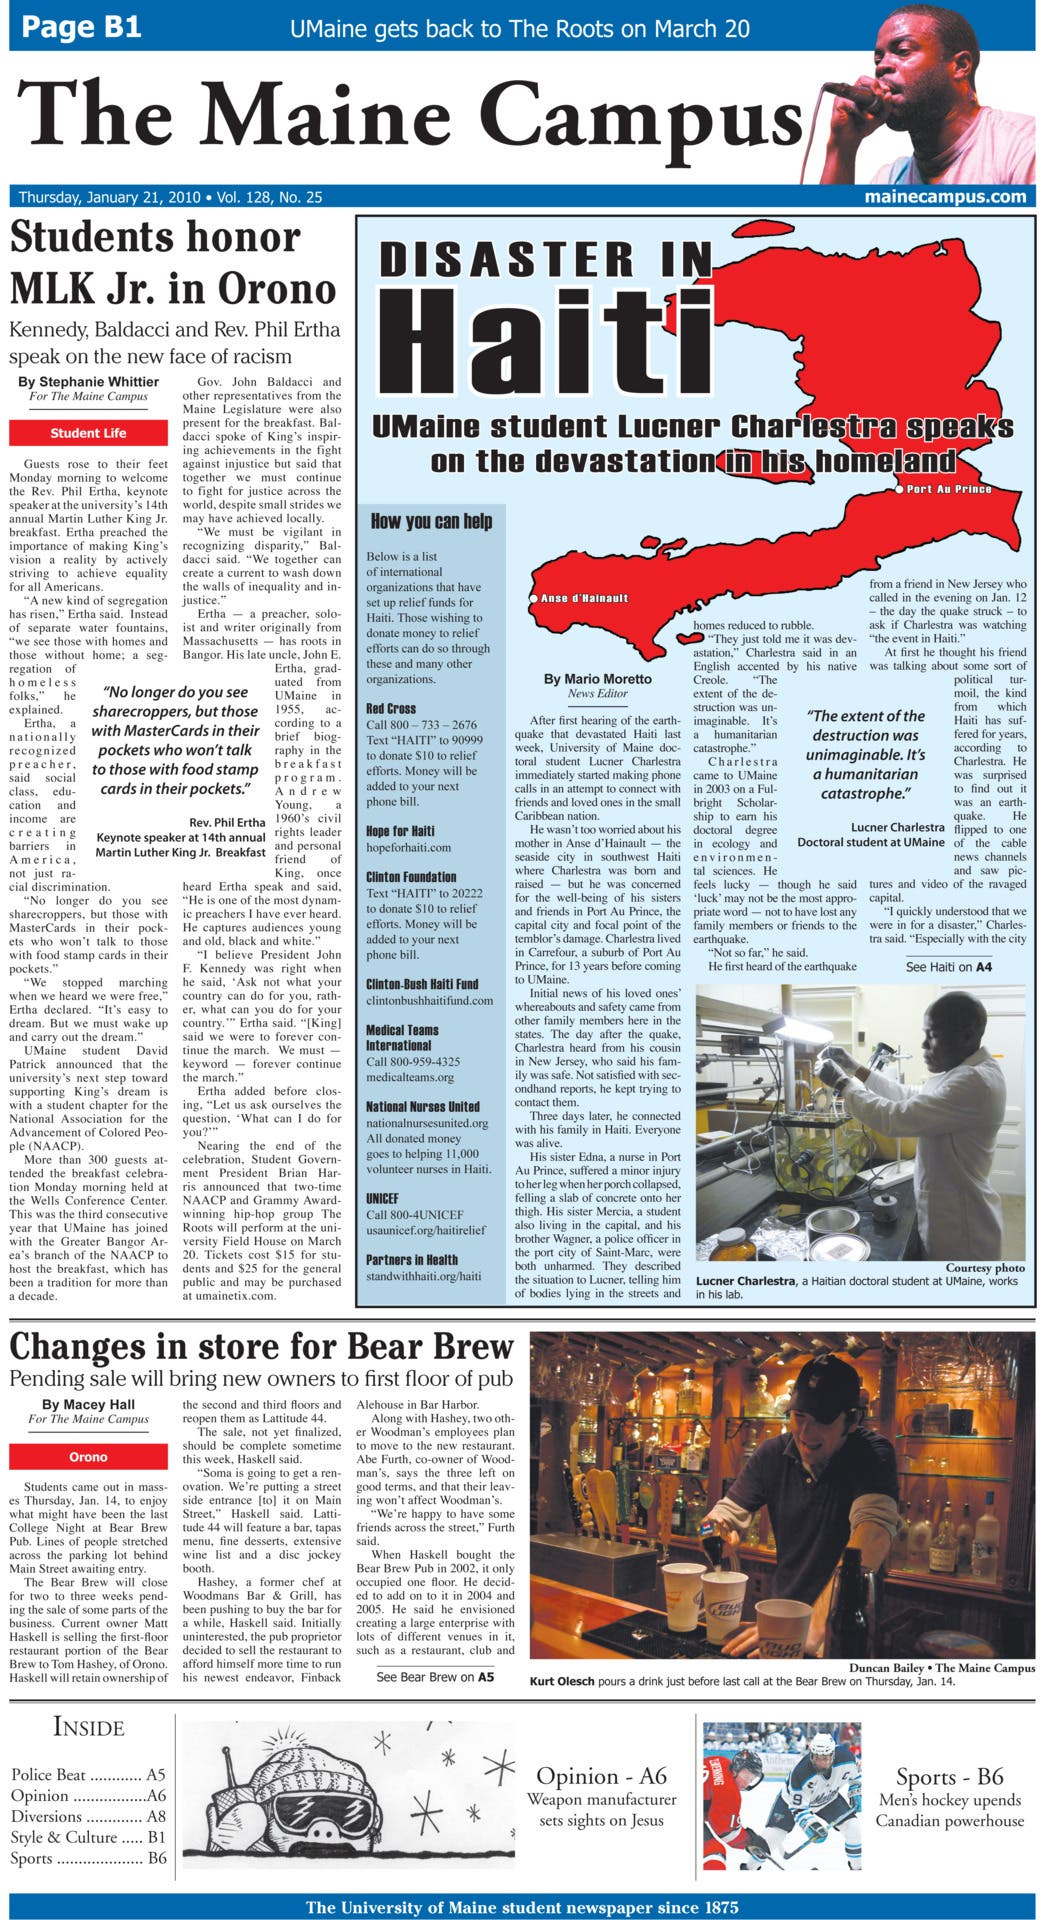 Haiti Newspaper Layout